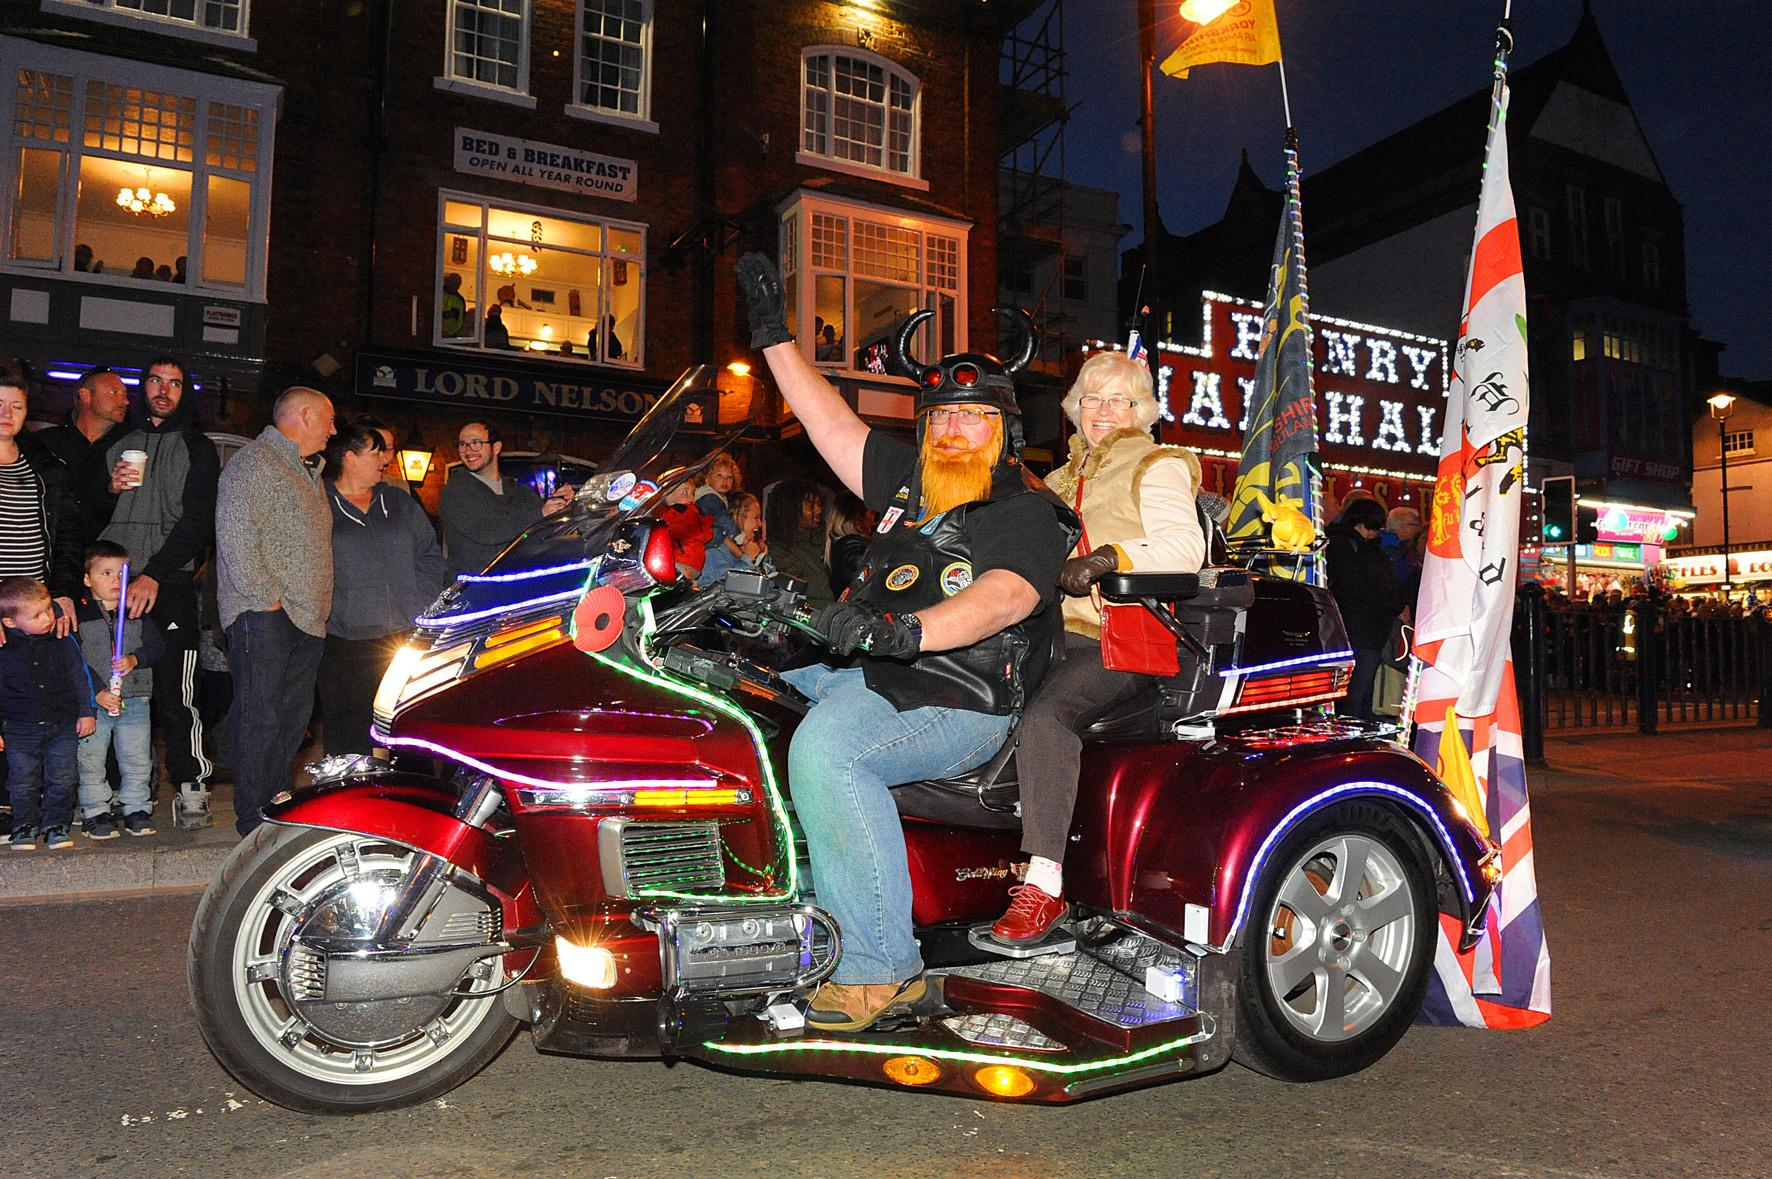 Picture of a Goldwing bike taking part in the Light Parade